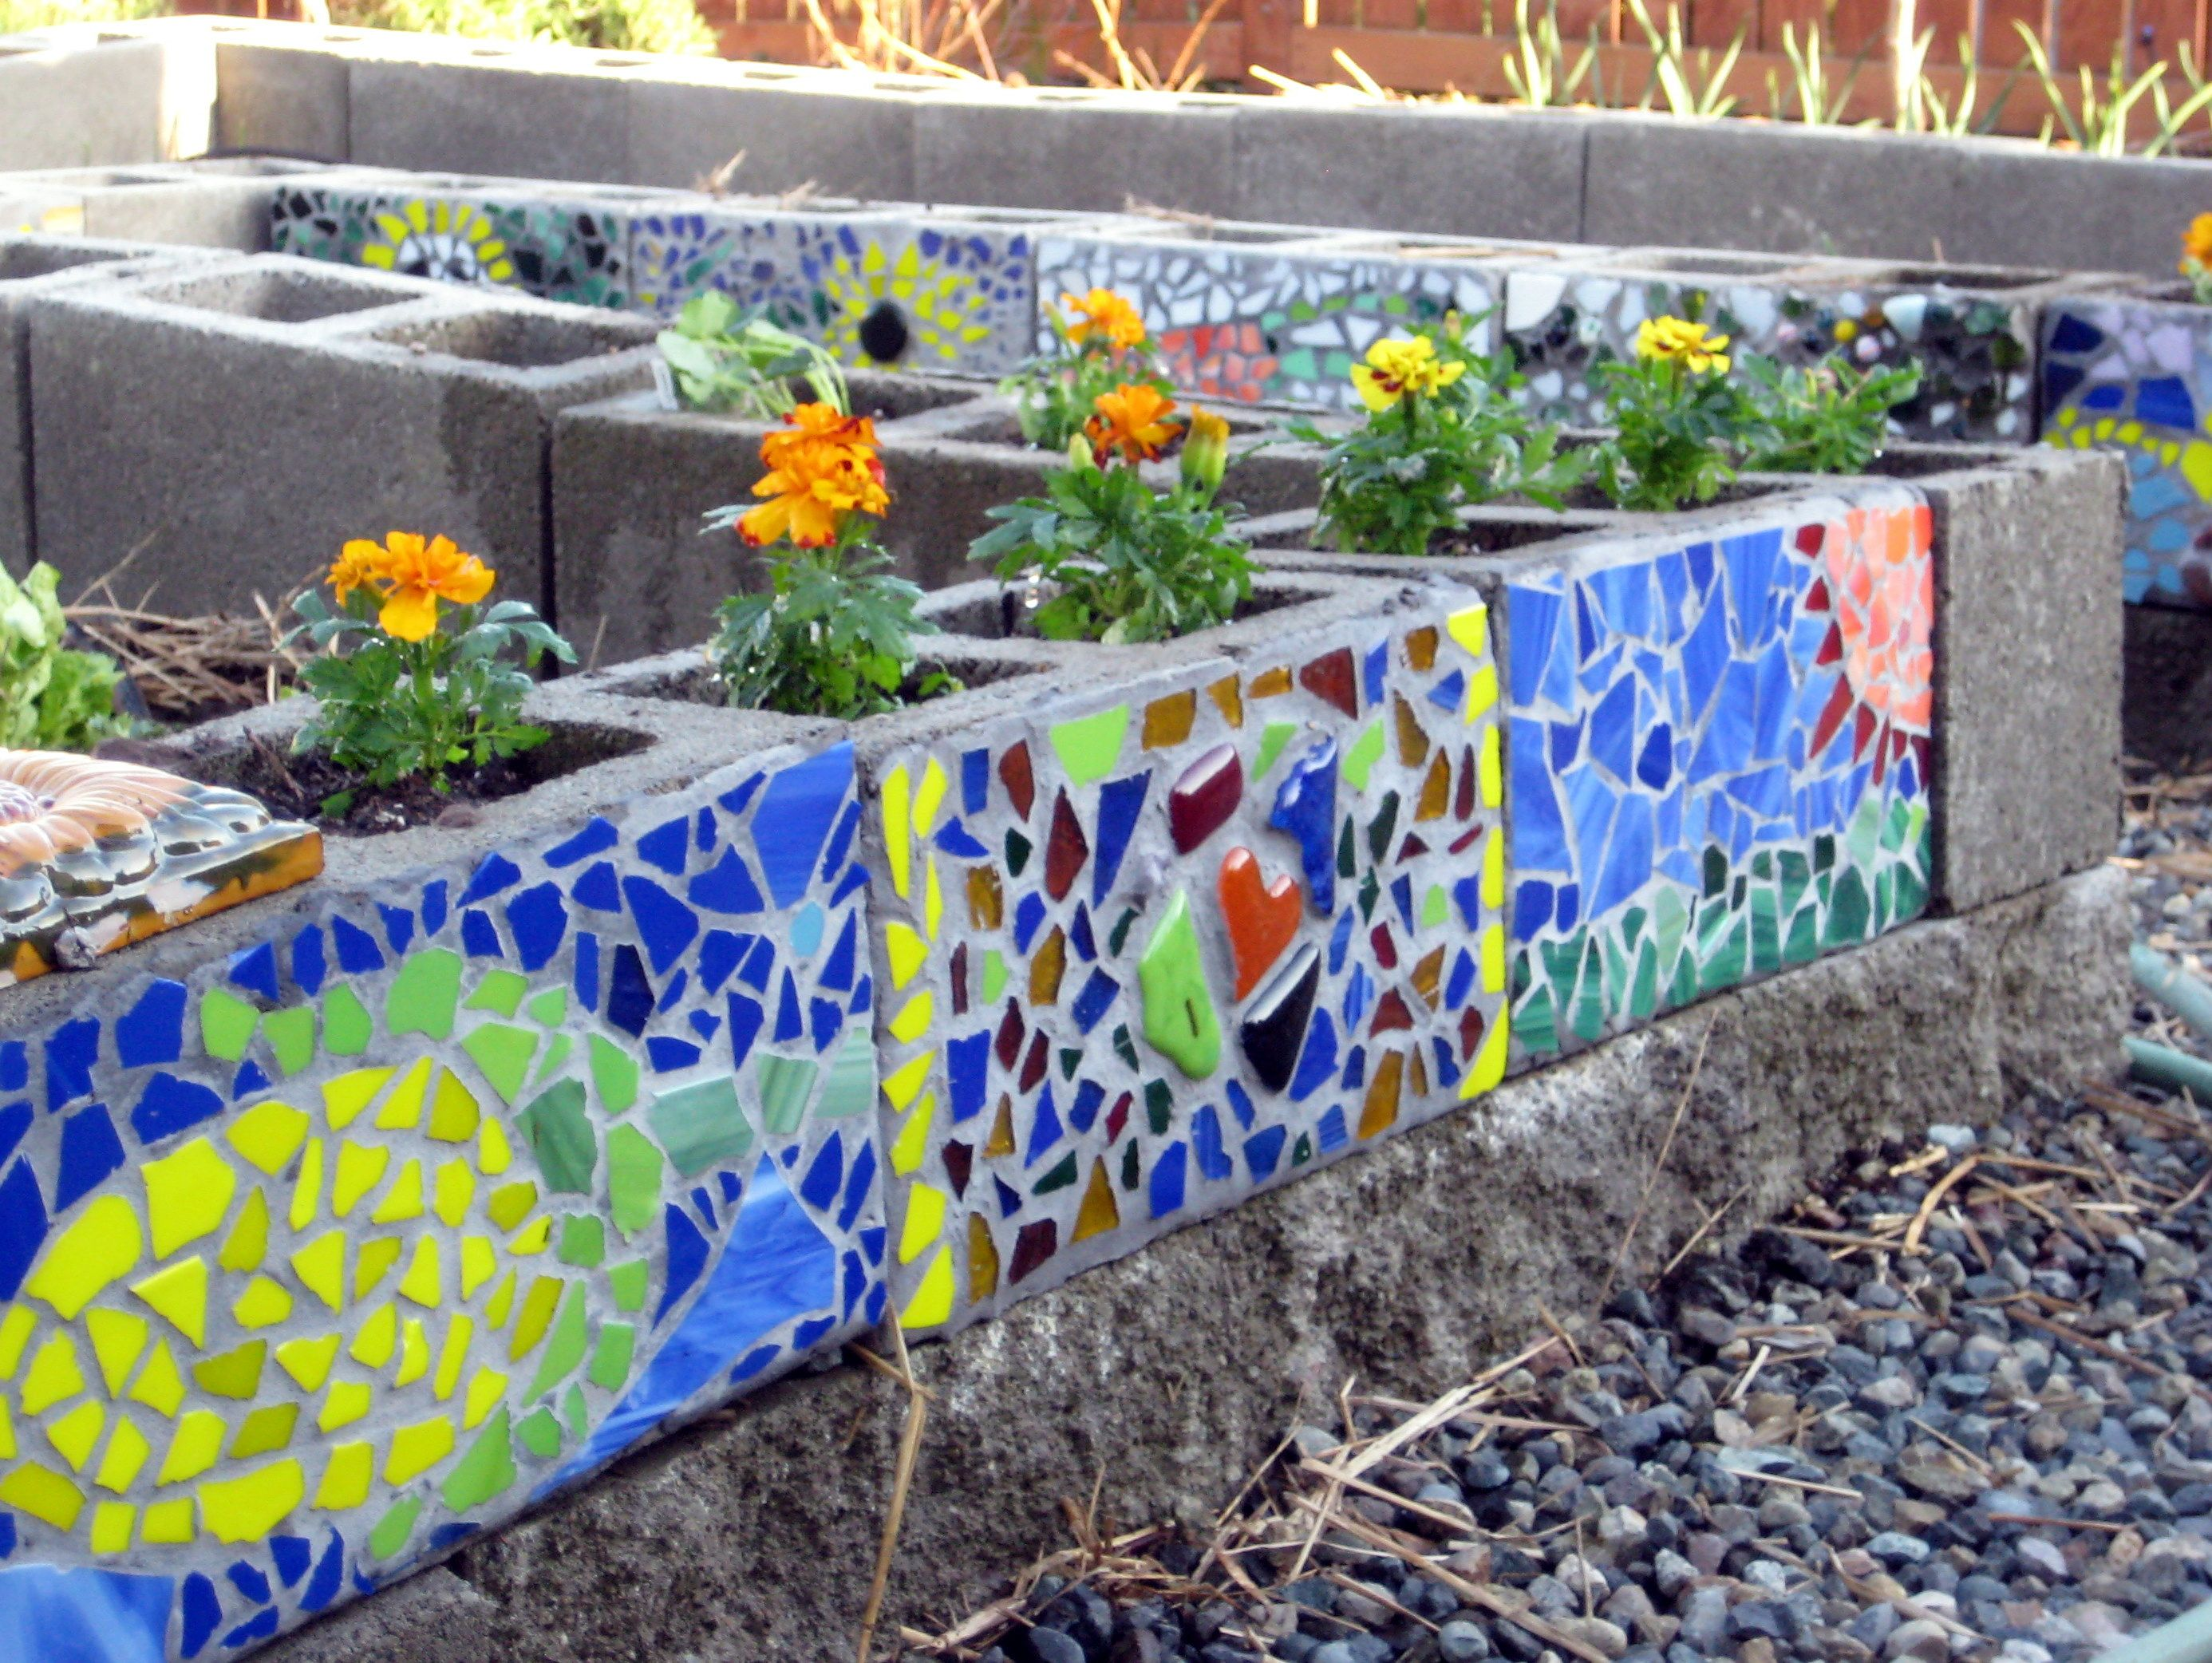 Cinderblock Raised Beds How To Very Nice Layout With Instructions Plus How To On The Mosaic Decoration Cinder Block Garden Mosaic Garden Garden Art